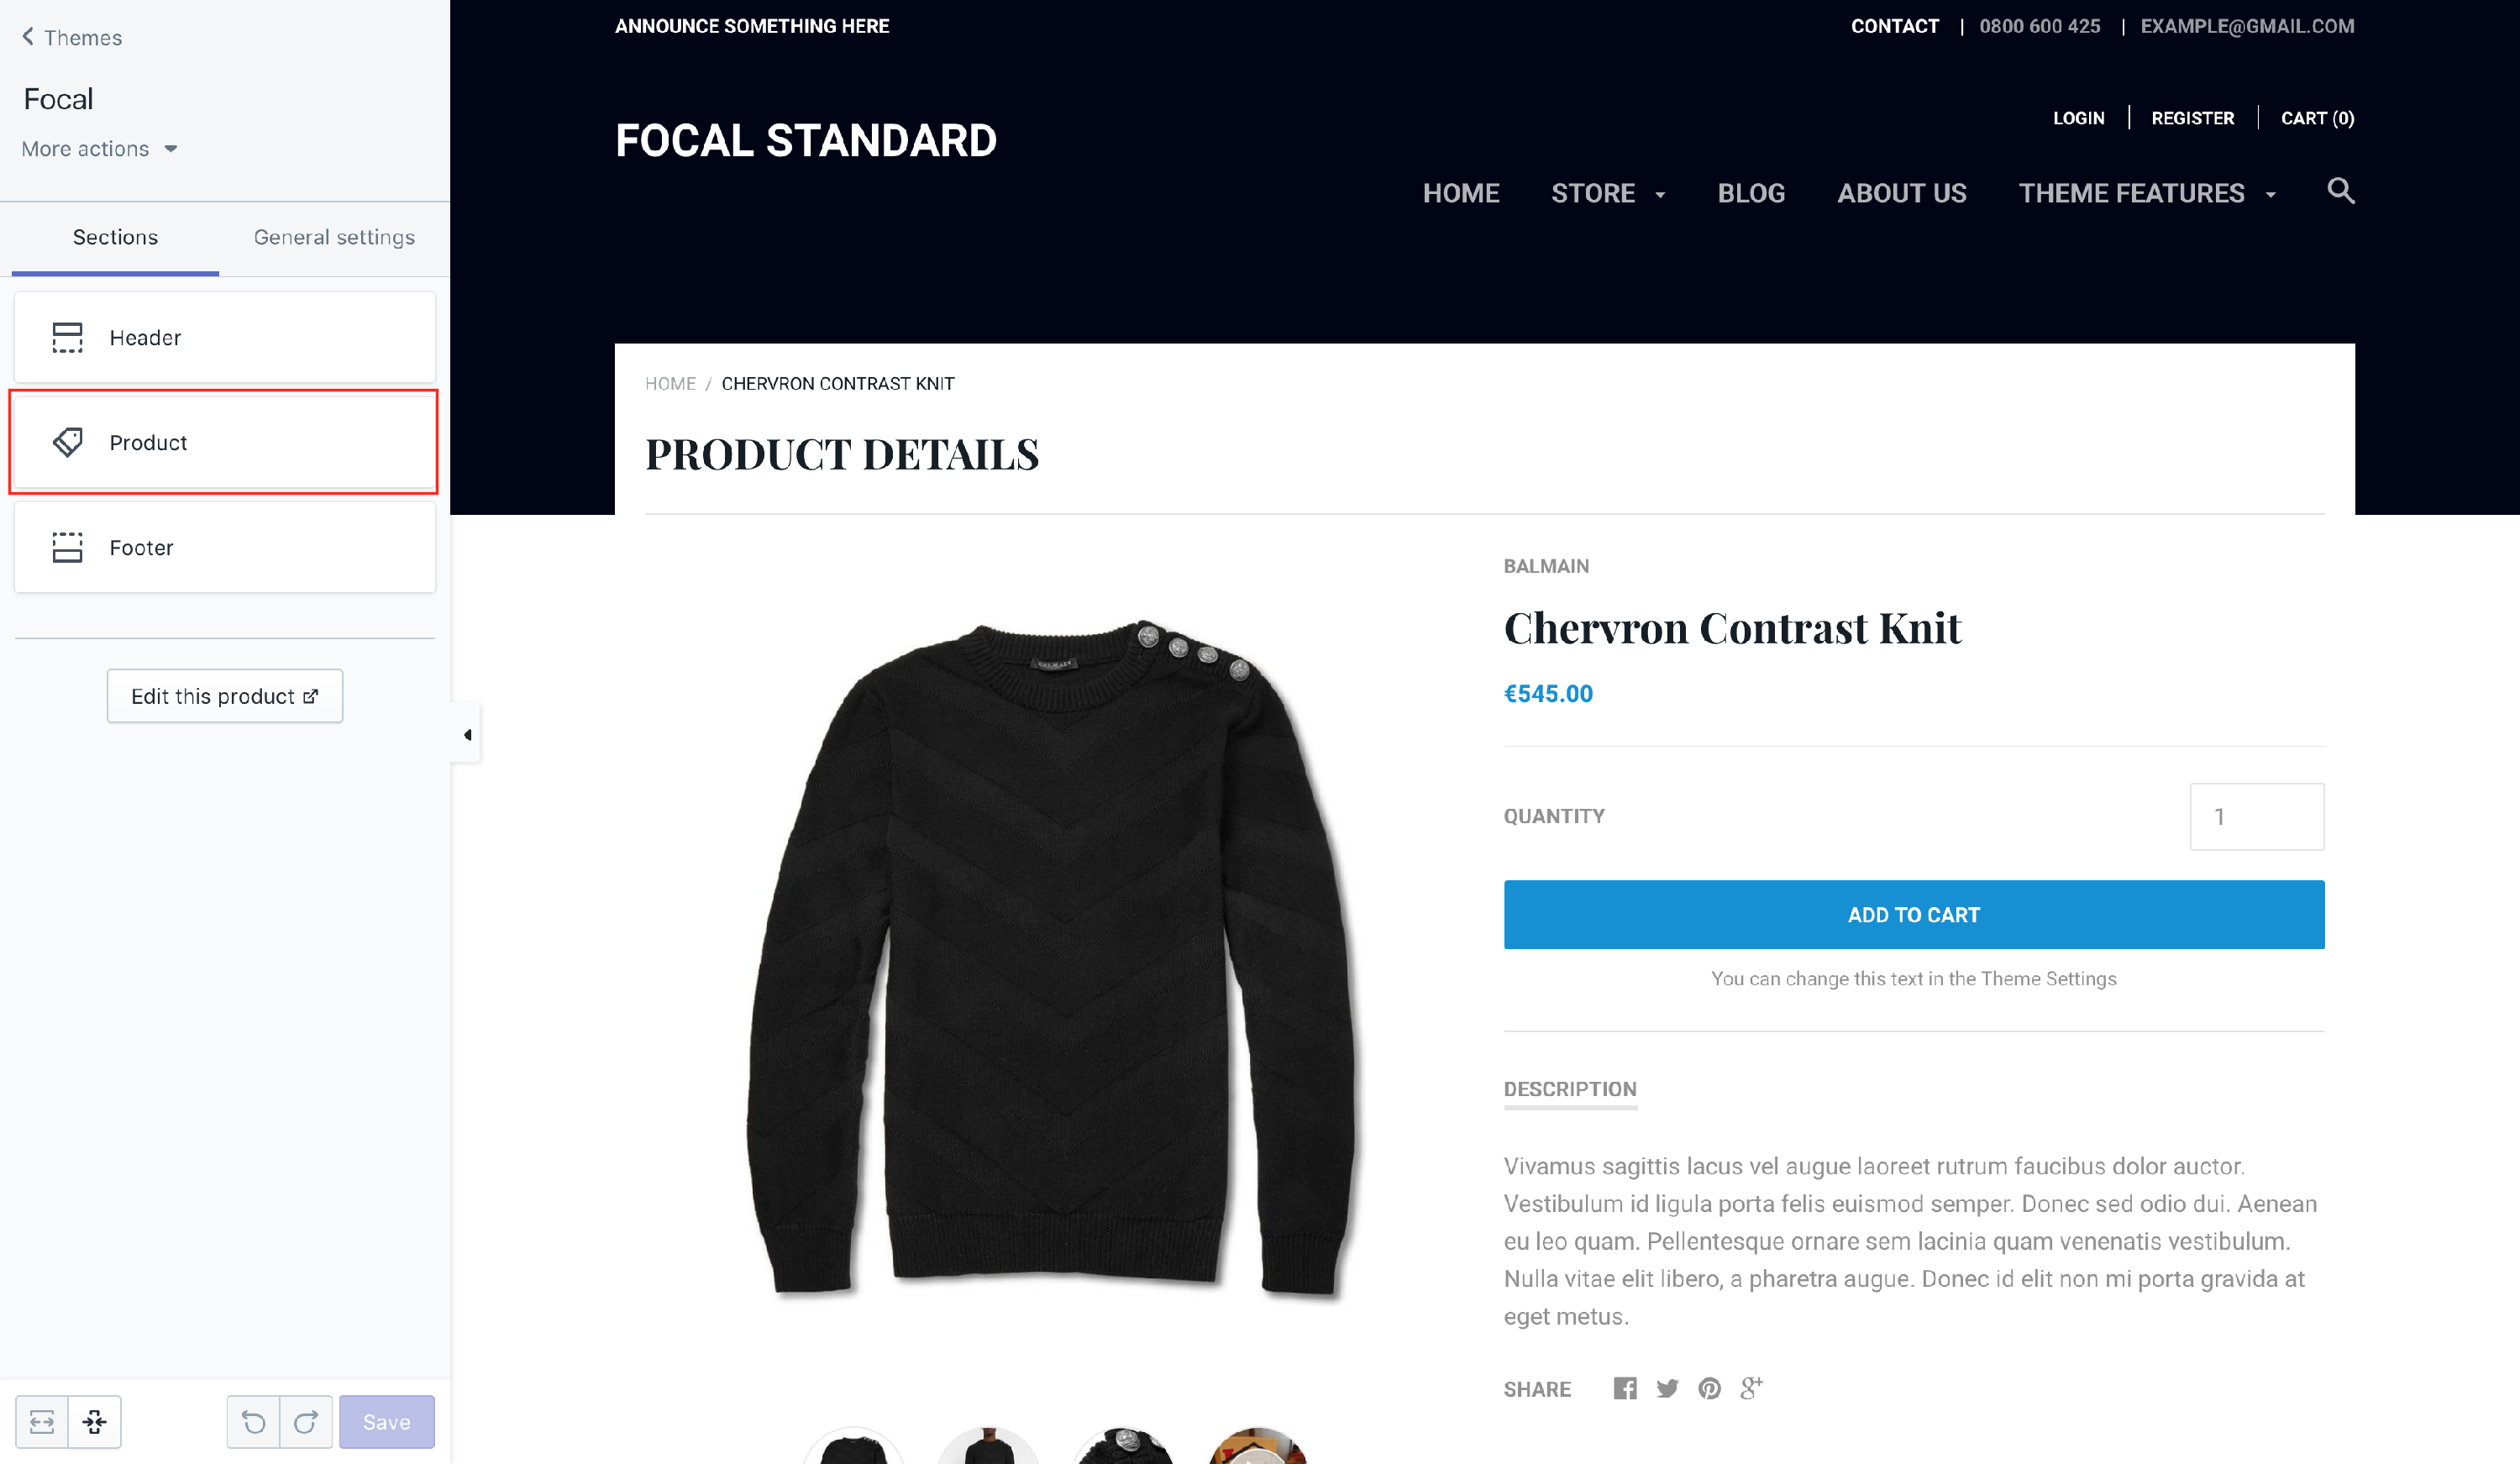 PRODUCT - Adding global tabs to product pages - Shopify